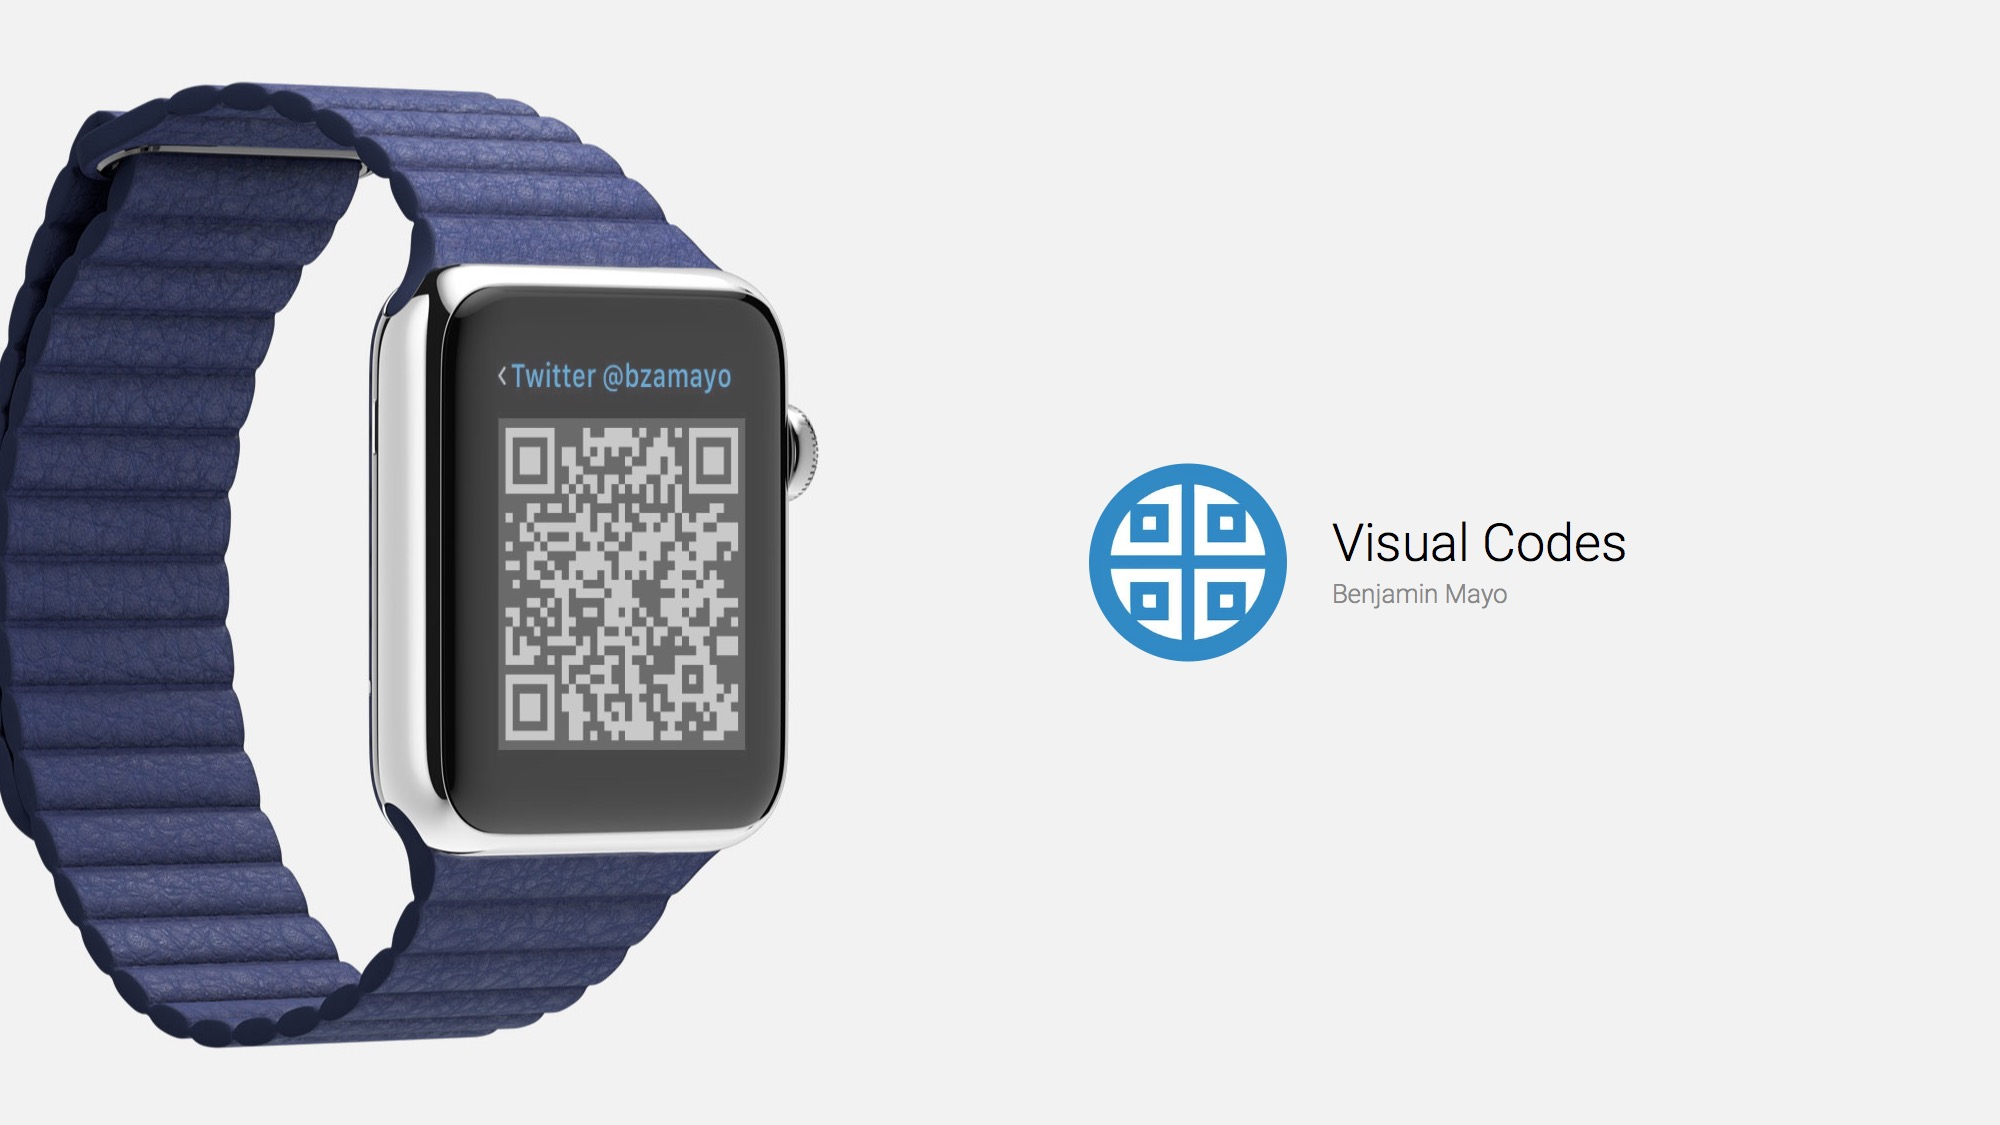 Visual Codes Puts Your QR Codes on Apple Watch